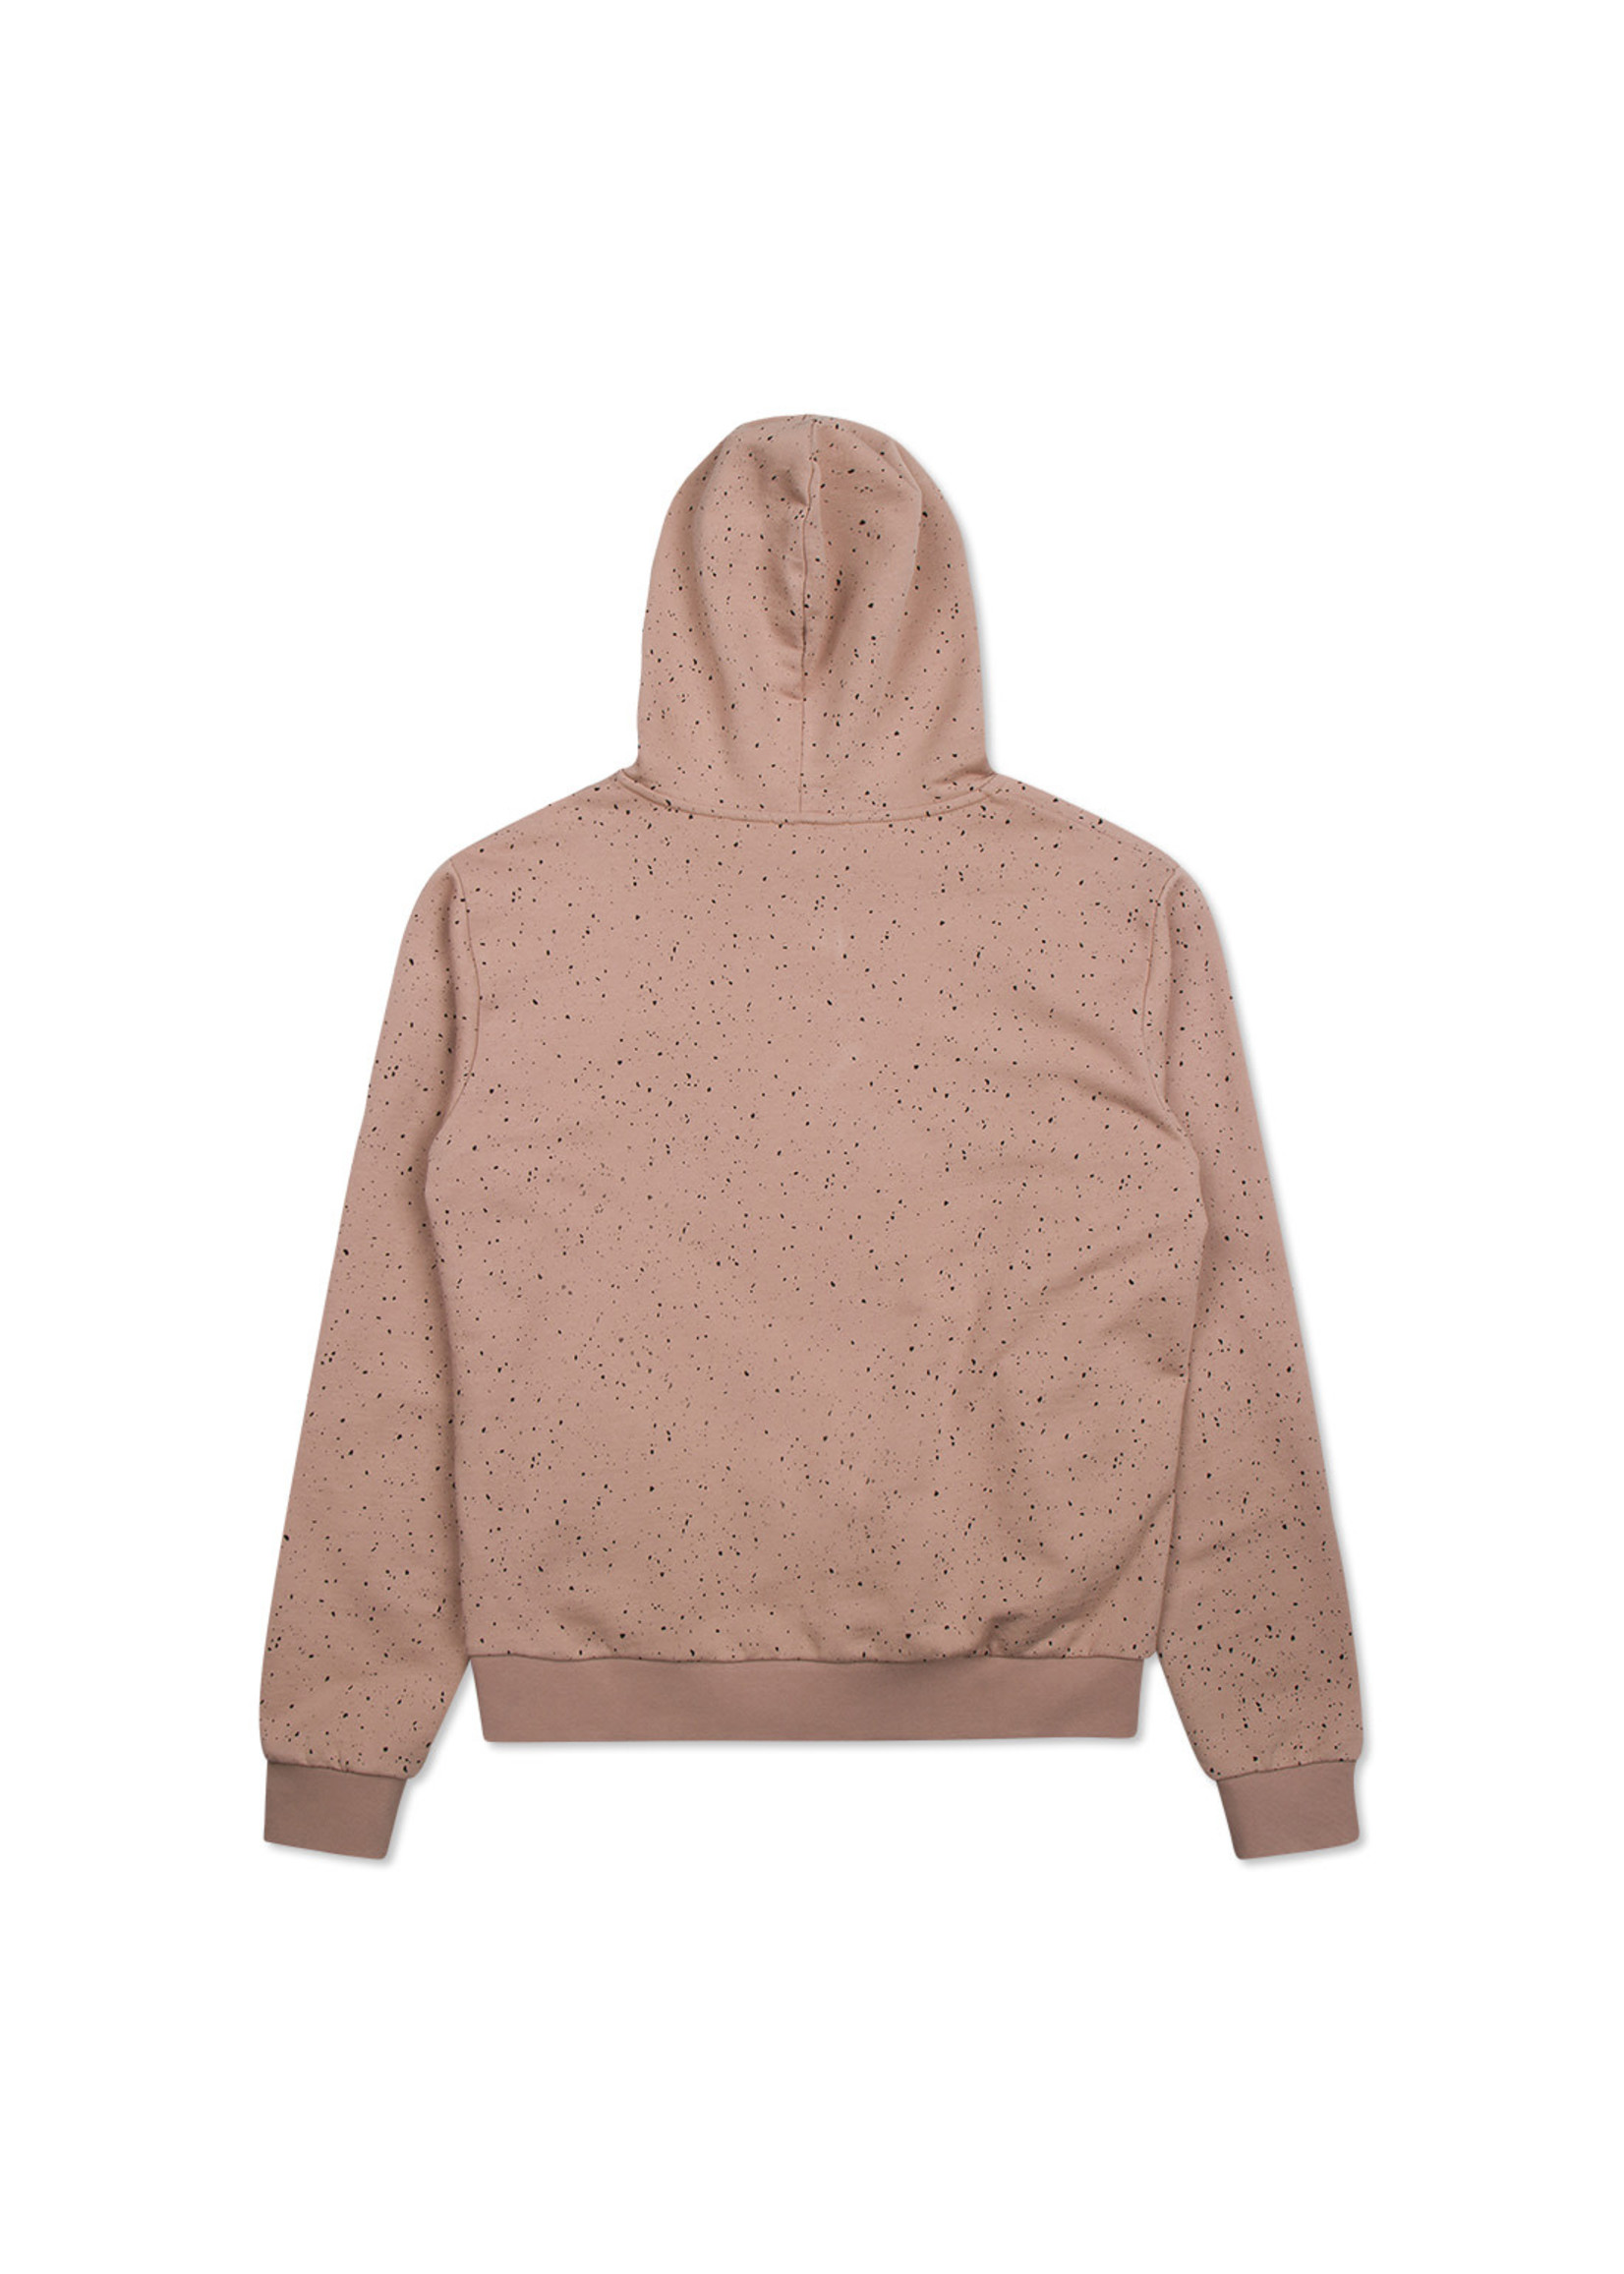 OFF THE PITCH The Cosmic Hood - Taupe